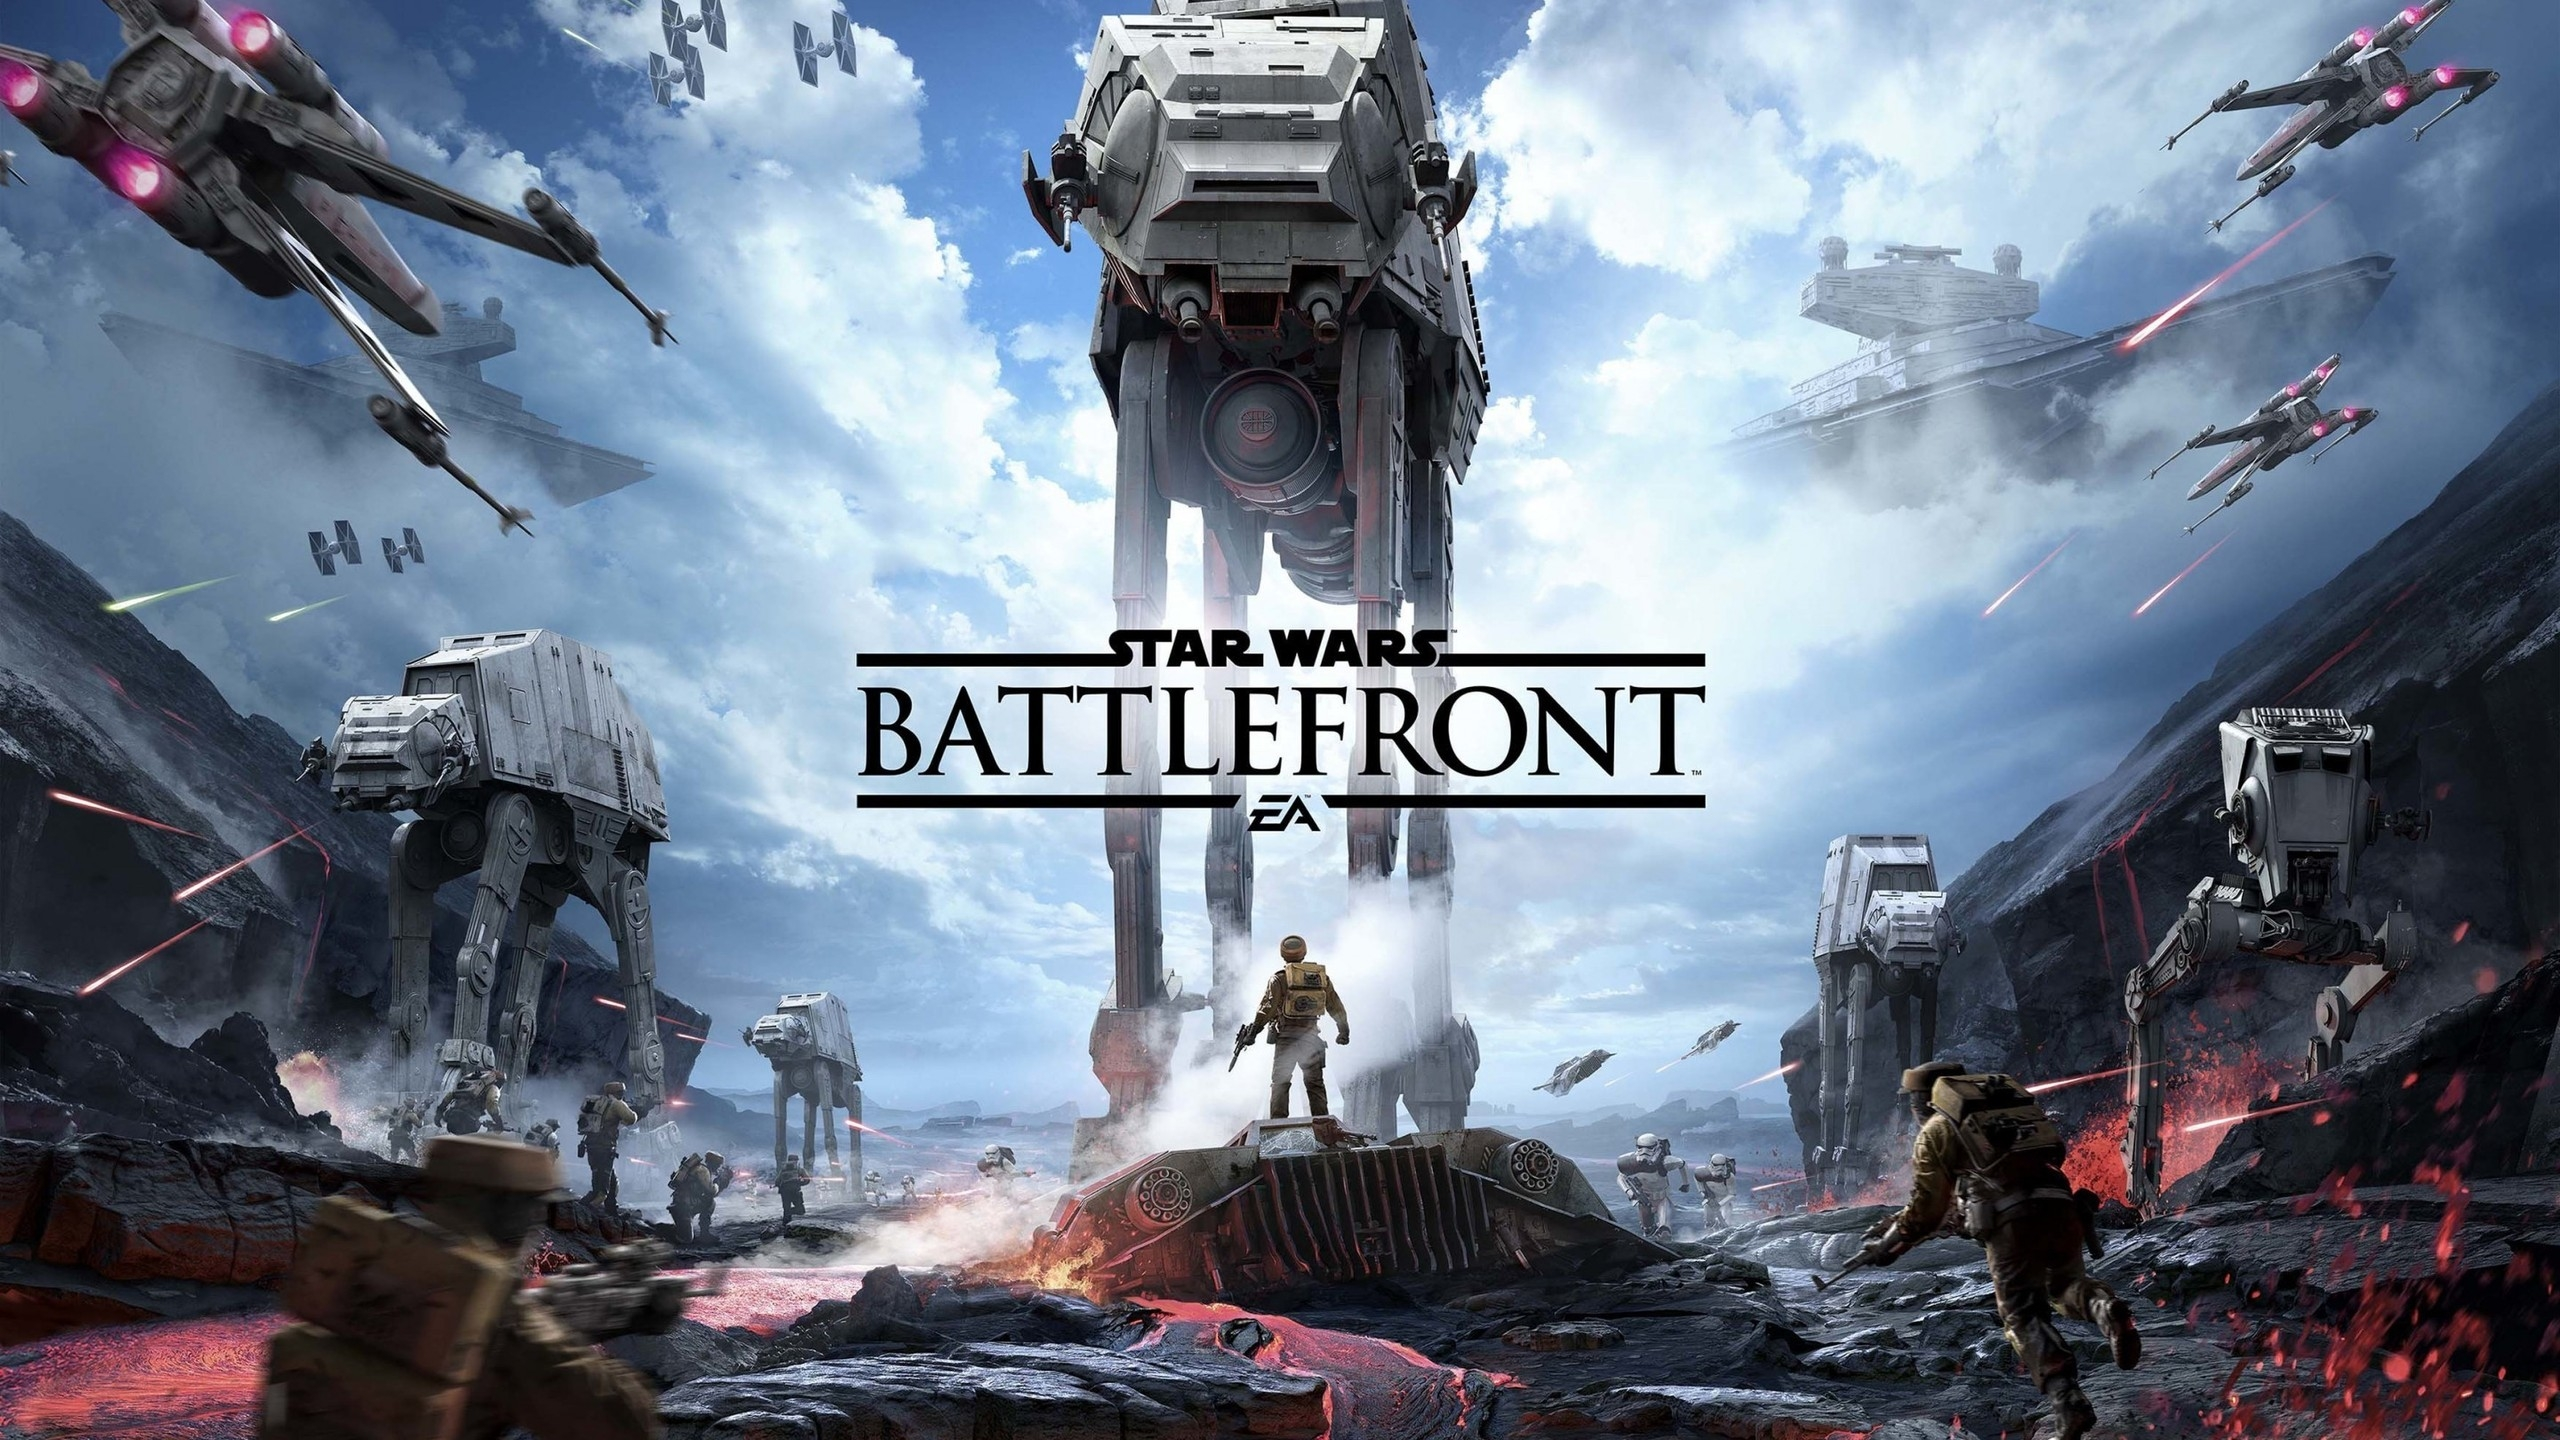 2560x1440 Star Wars Battlefront desktop PC and Mac wallpaper 1469